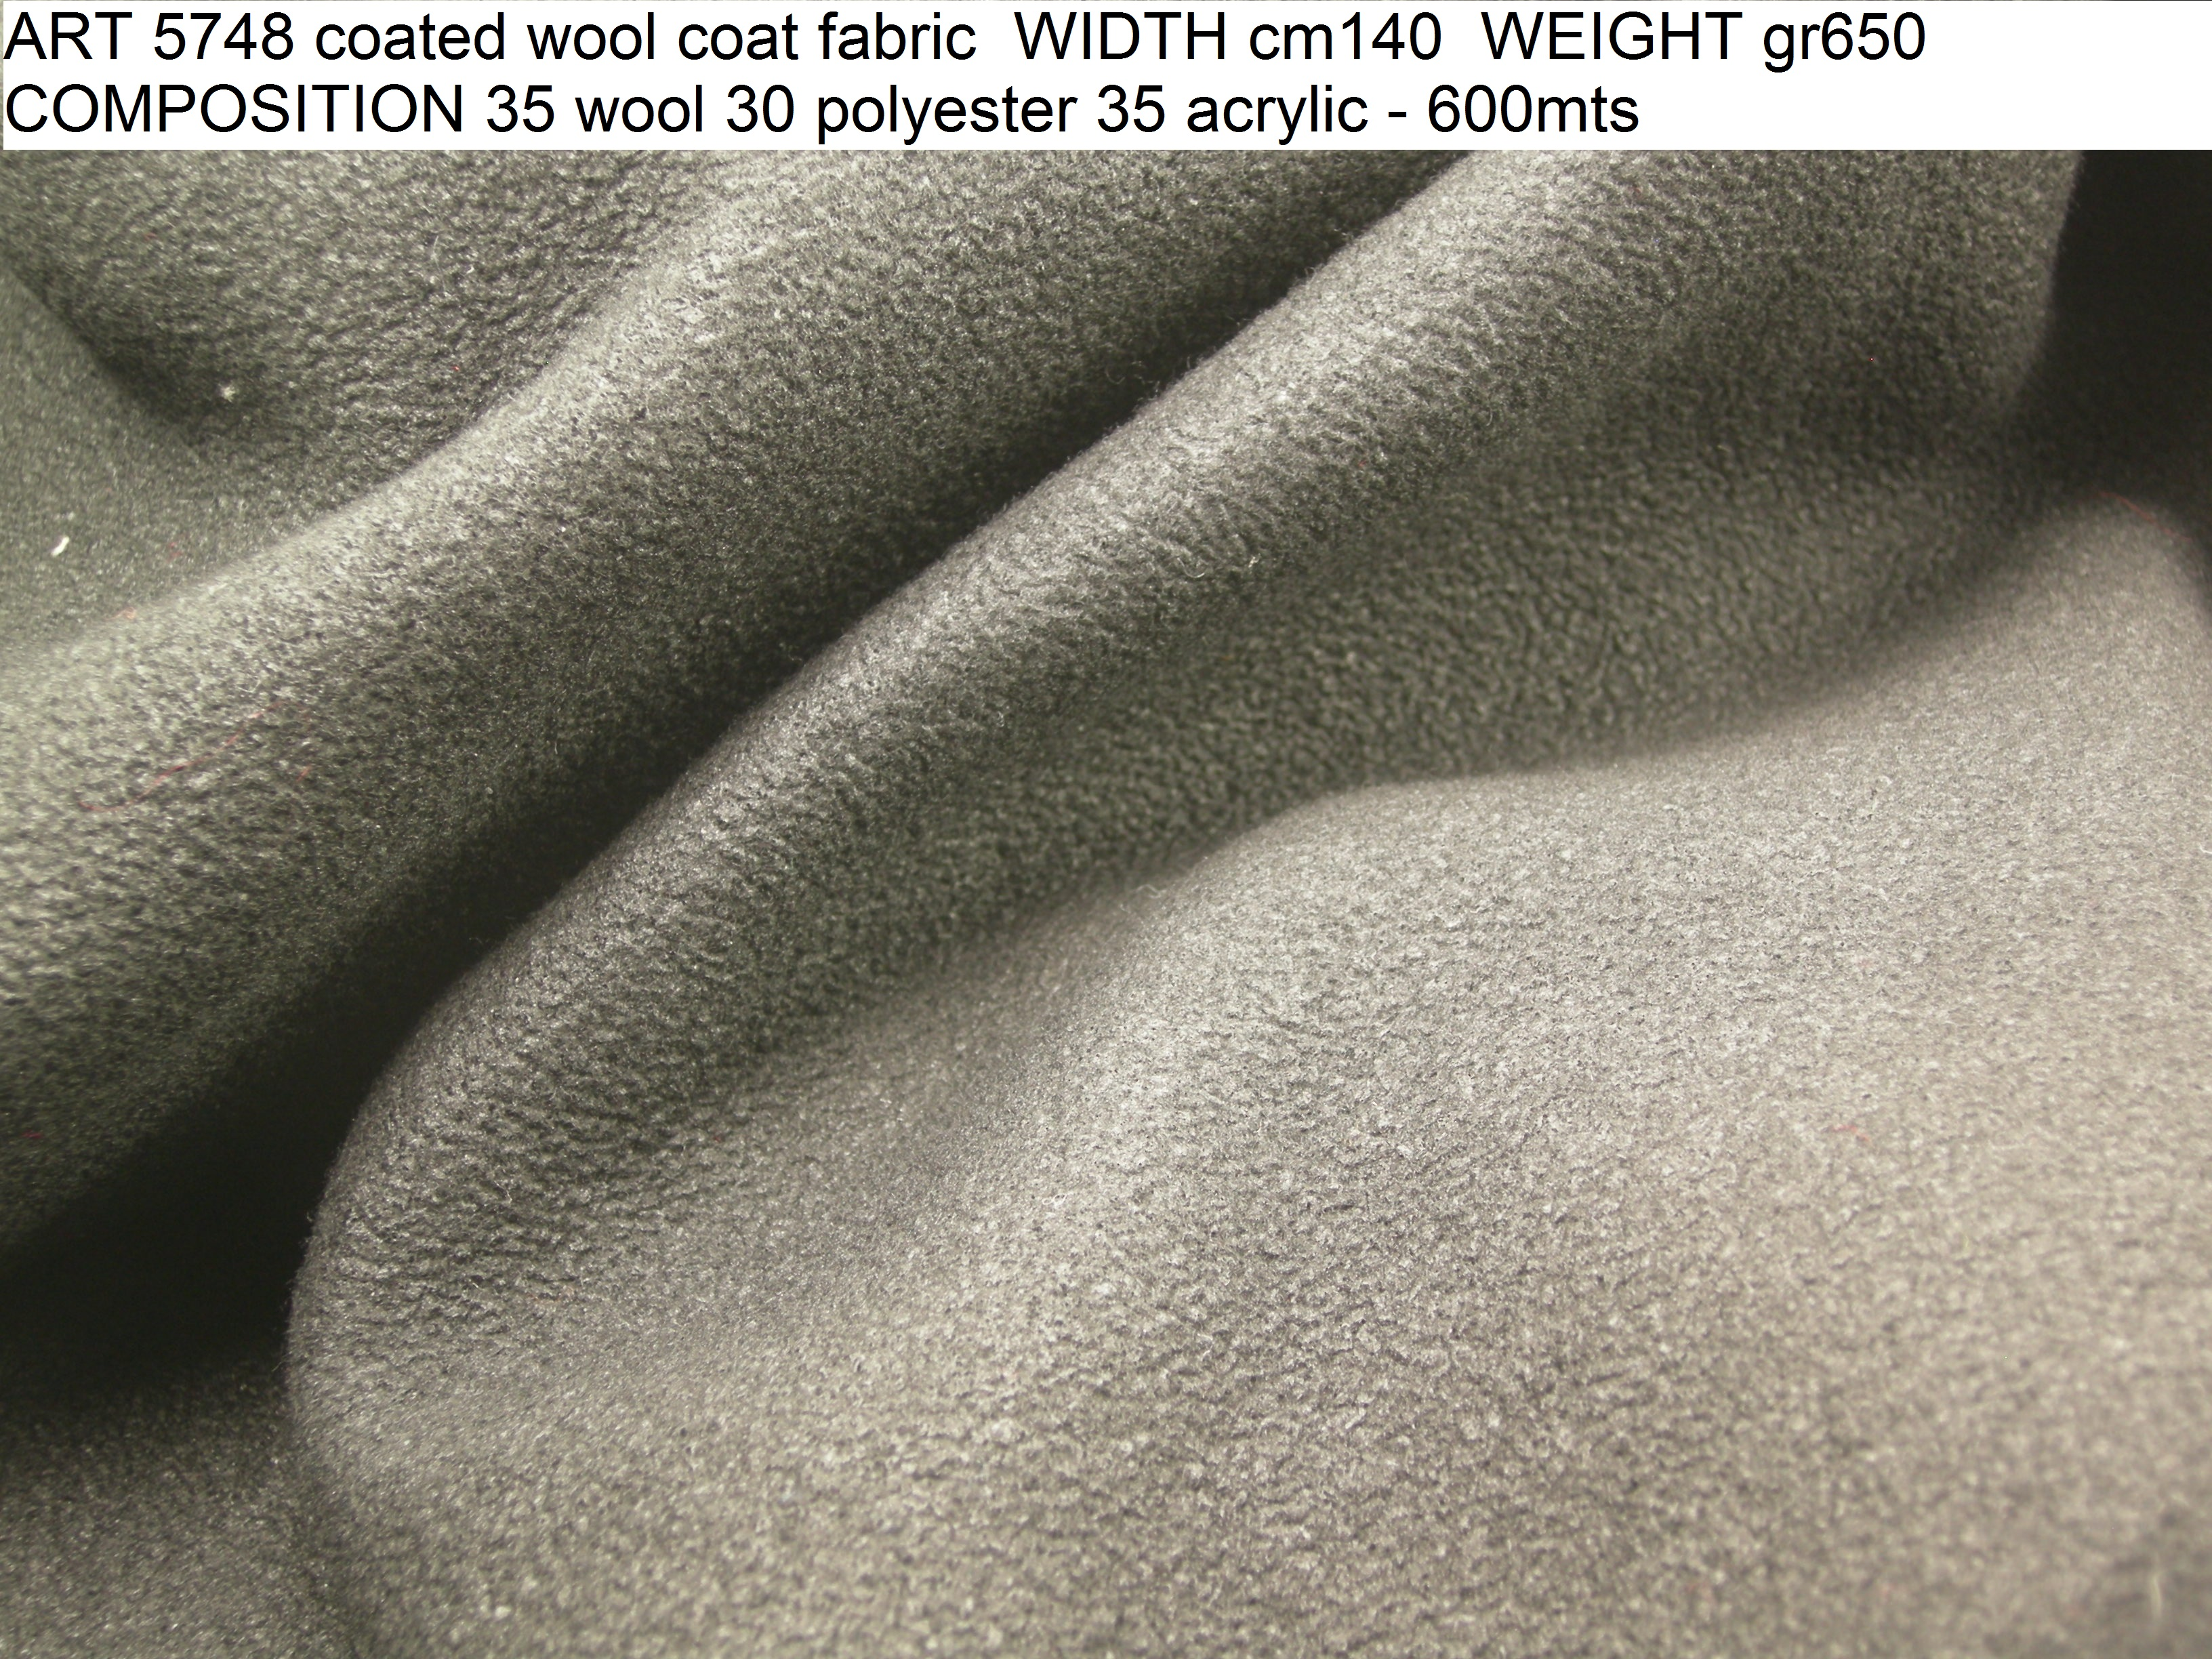 ART 5748 coated wool coat fabric WIDTH cm140 WEIGHT gr650 COMPOSITION 35 wool 30 polyester 35 acrylic - 600mts